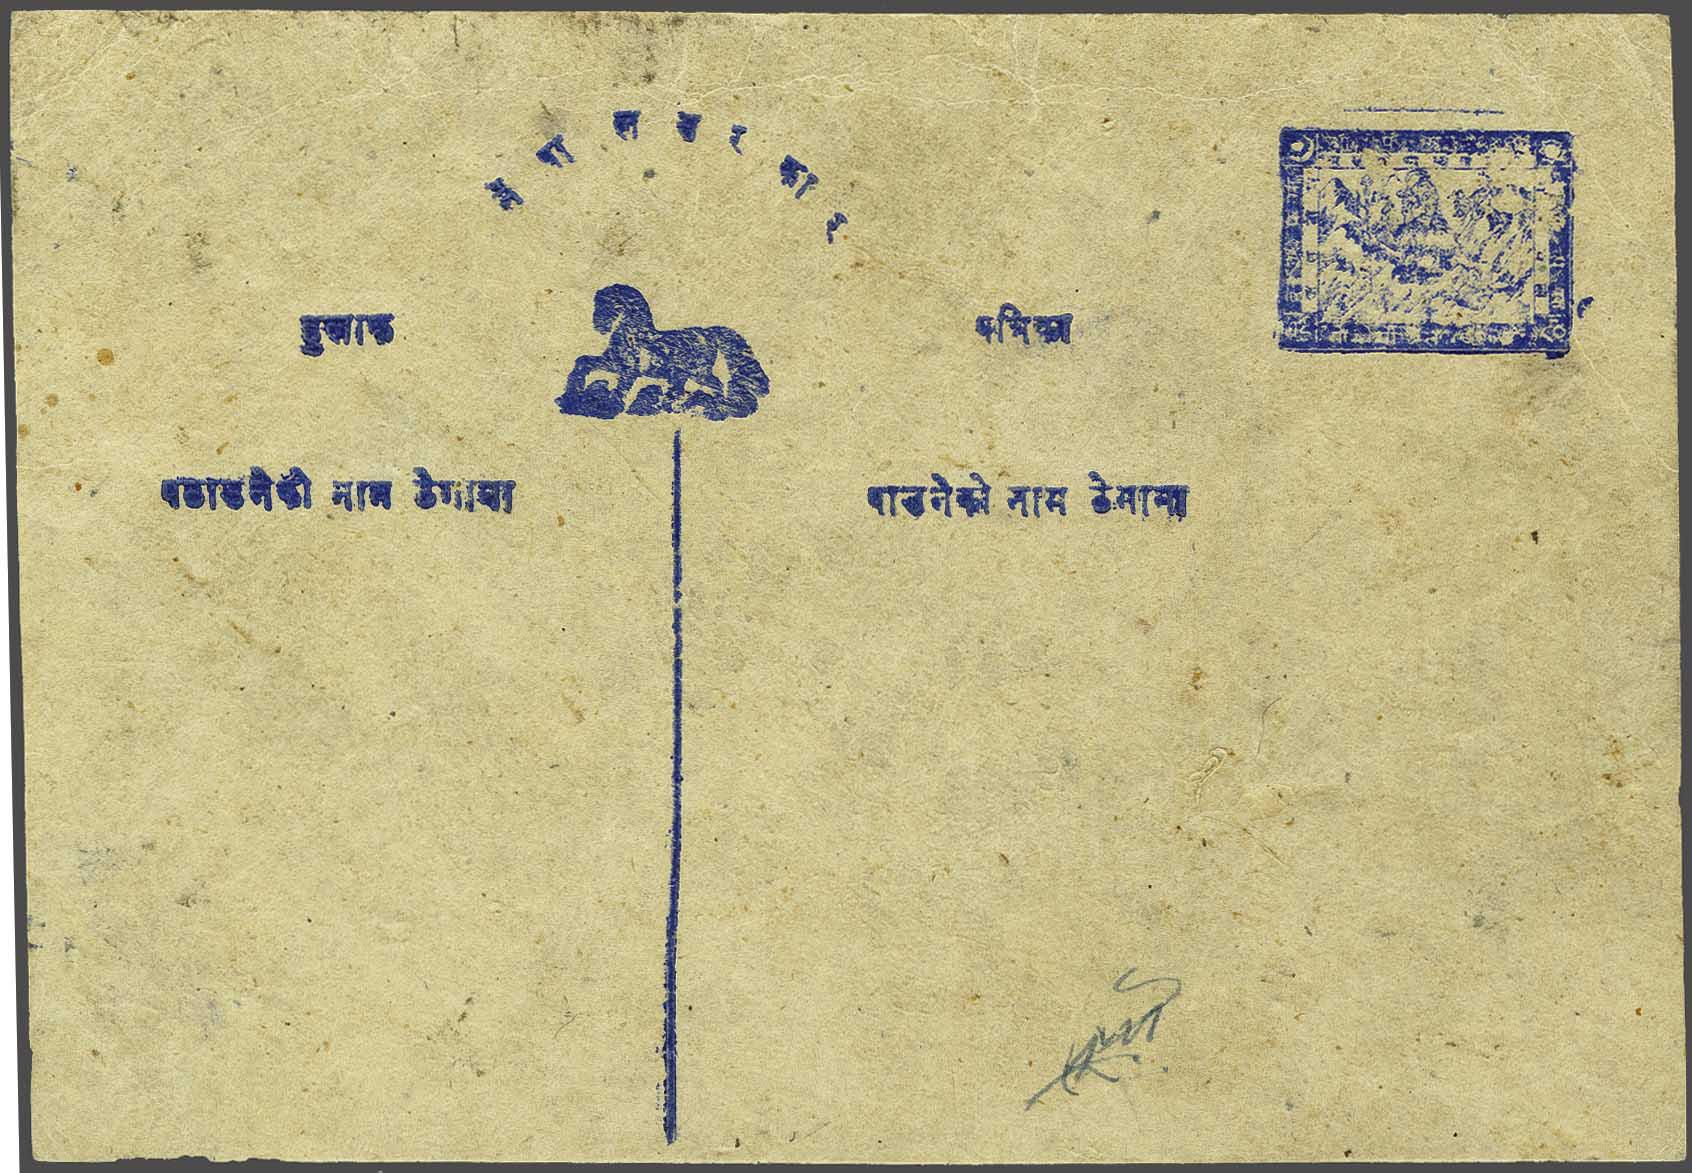 Lot 56 - Great Britain and former colonies Nepal -  Corinphila Veilingen Auction 245-246 Day 1 - Nepal - The Dick van der Wateren Collection, Foreign countries - Single lots, Picture postcards